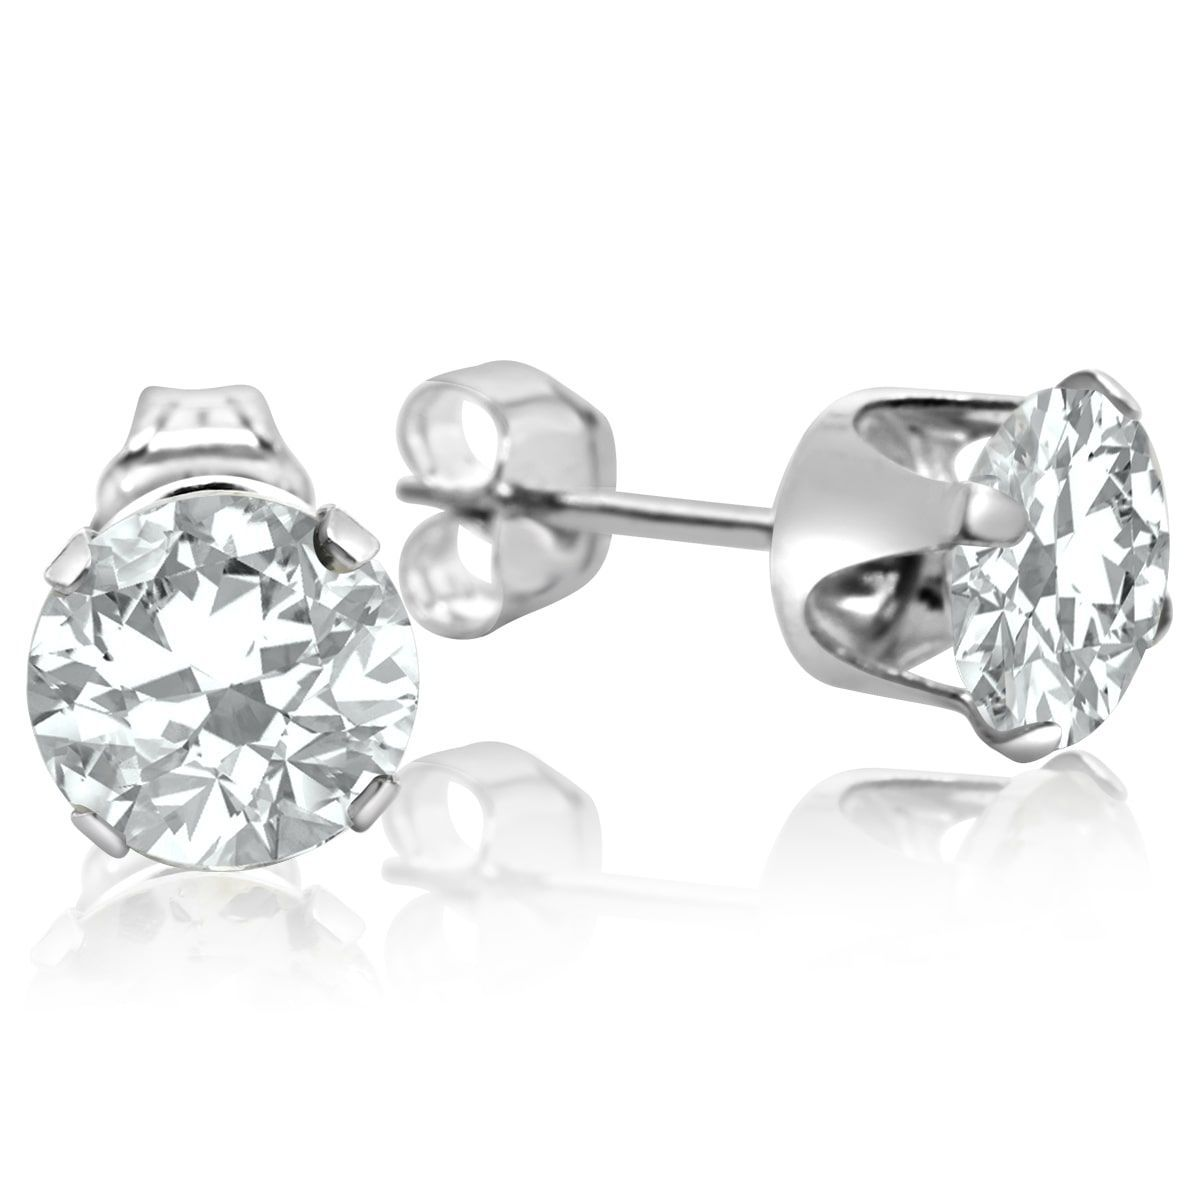 2 Tgw White Topaz Stud Earrings In Sterling Silver Women S